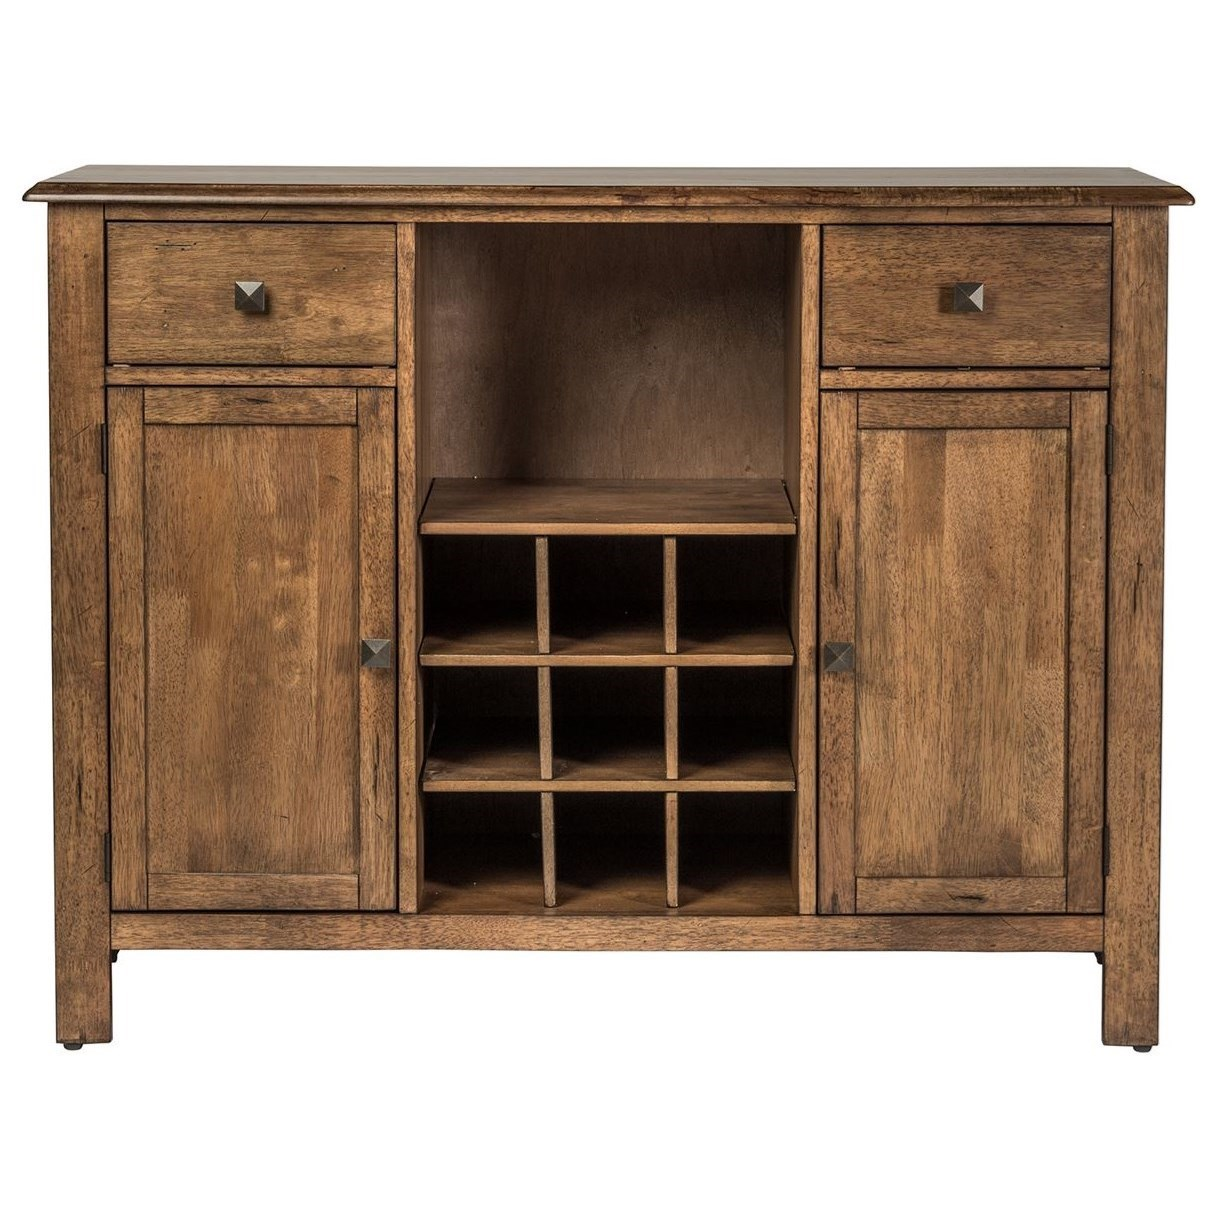 Transitional Dining Server with Removable Wine Bottle Storage